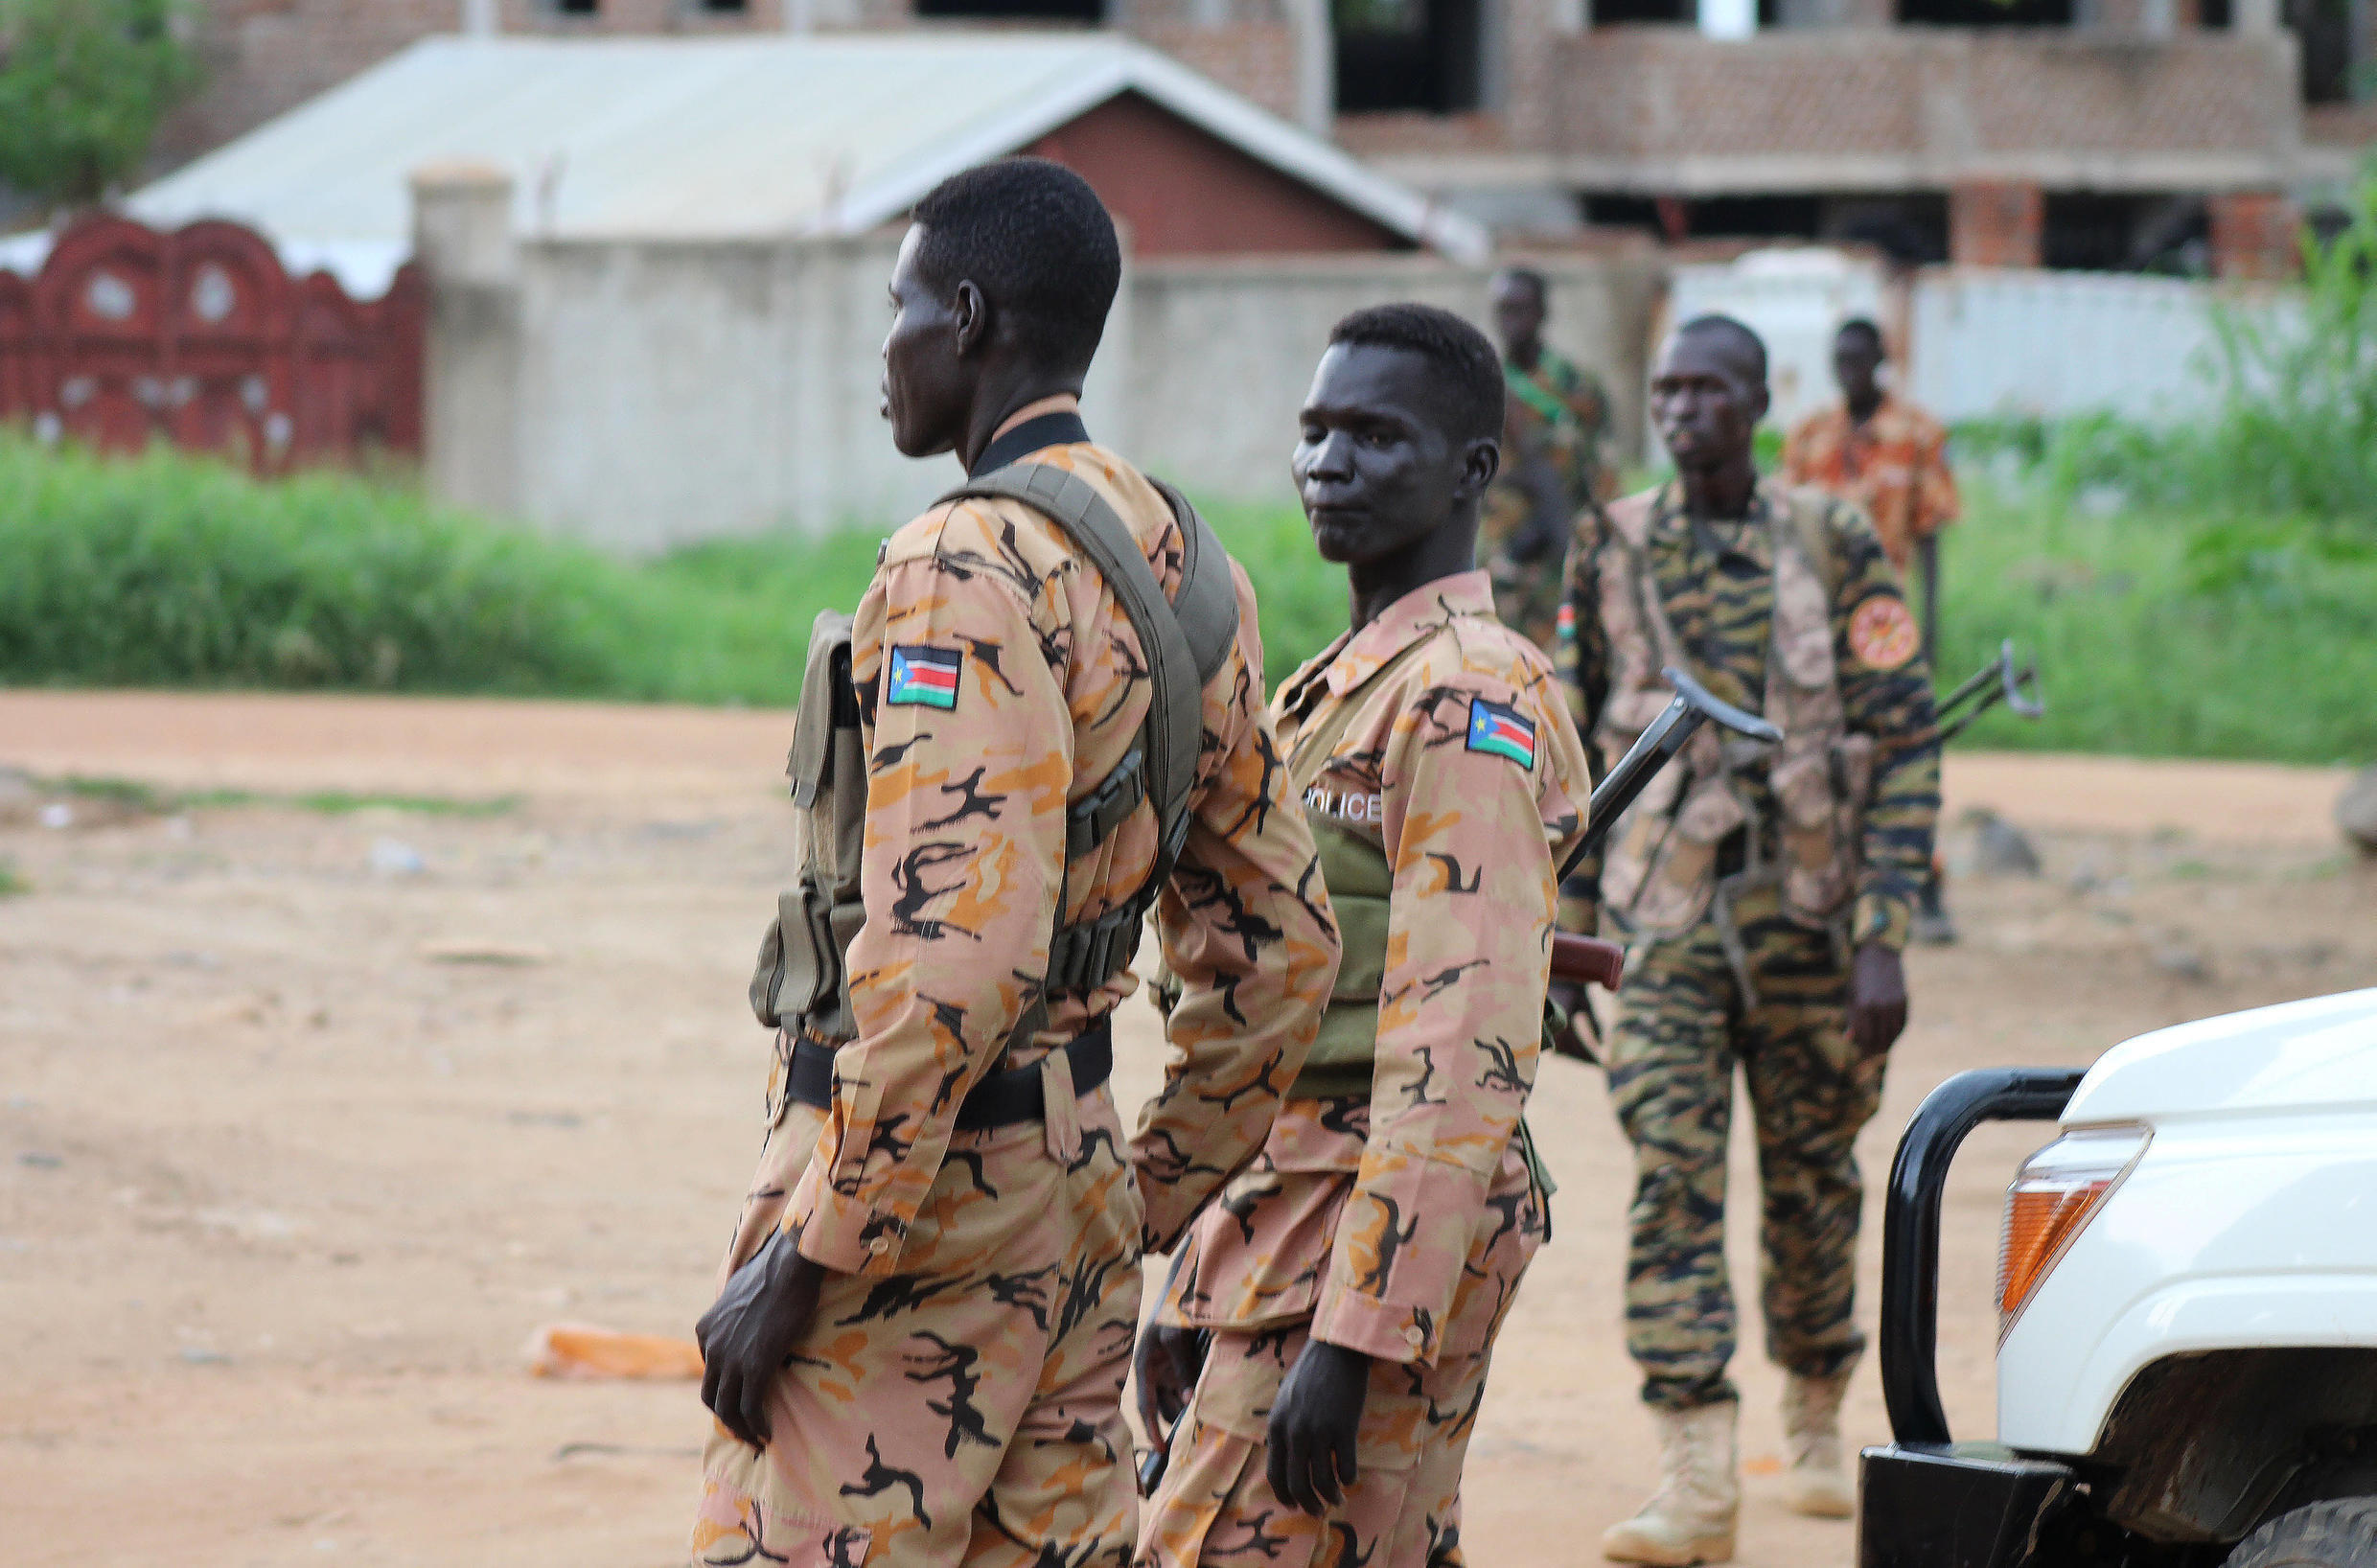 South Sudanese policemen and soldiers stand guard along a street following renewed fighting in South Sudan's capital Juba, July 10, 2016